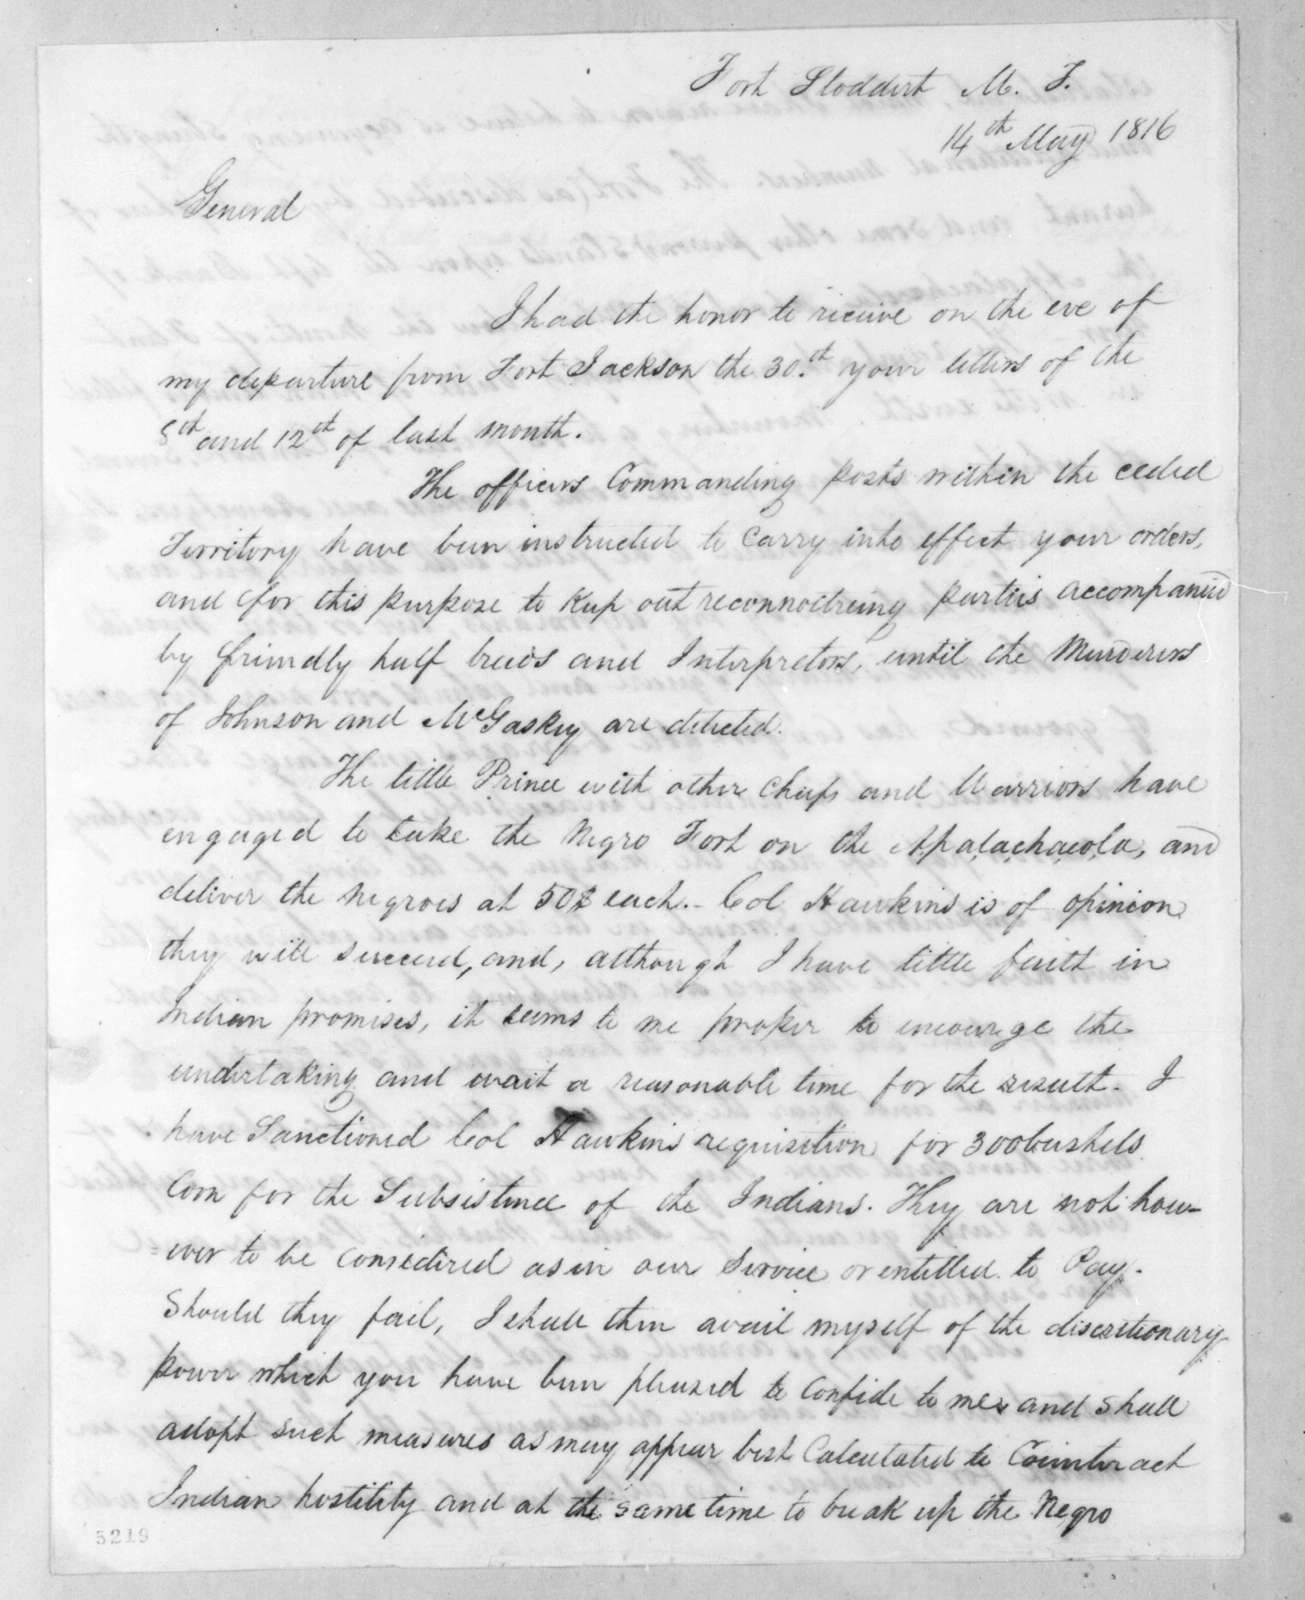 Edmund Pendleton Gaines to Andrew Jackson, May 14, 1816